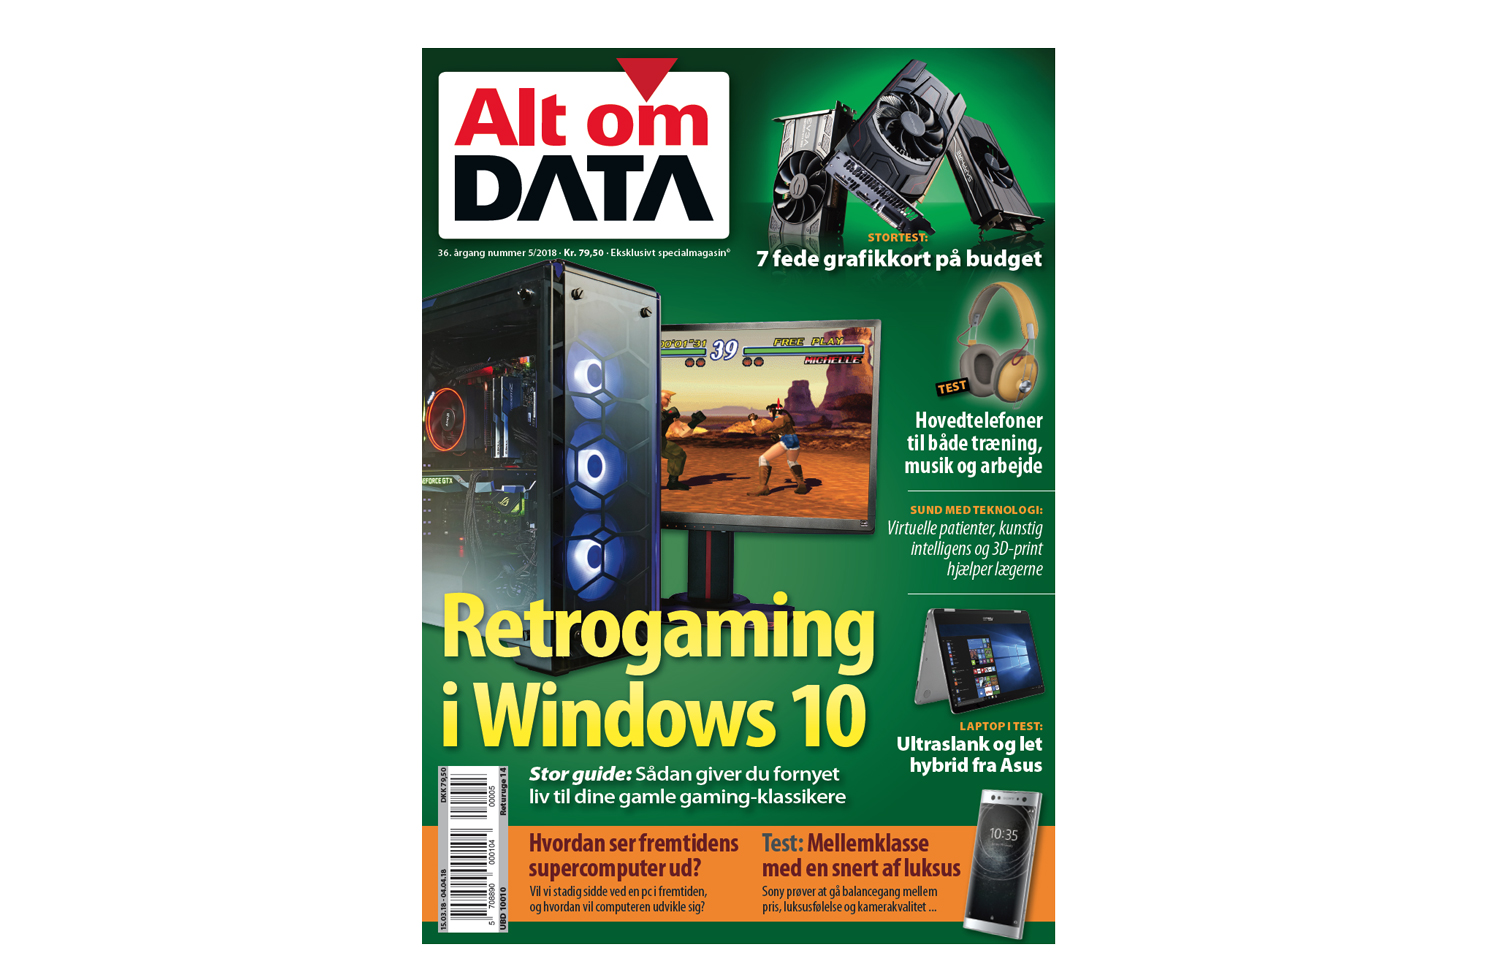 Nyt Alt om DATA: Retrogaming i Windows 10